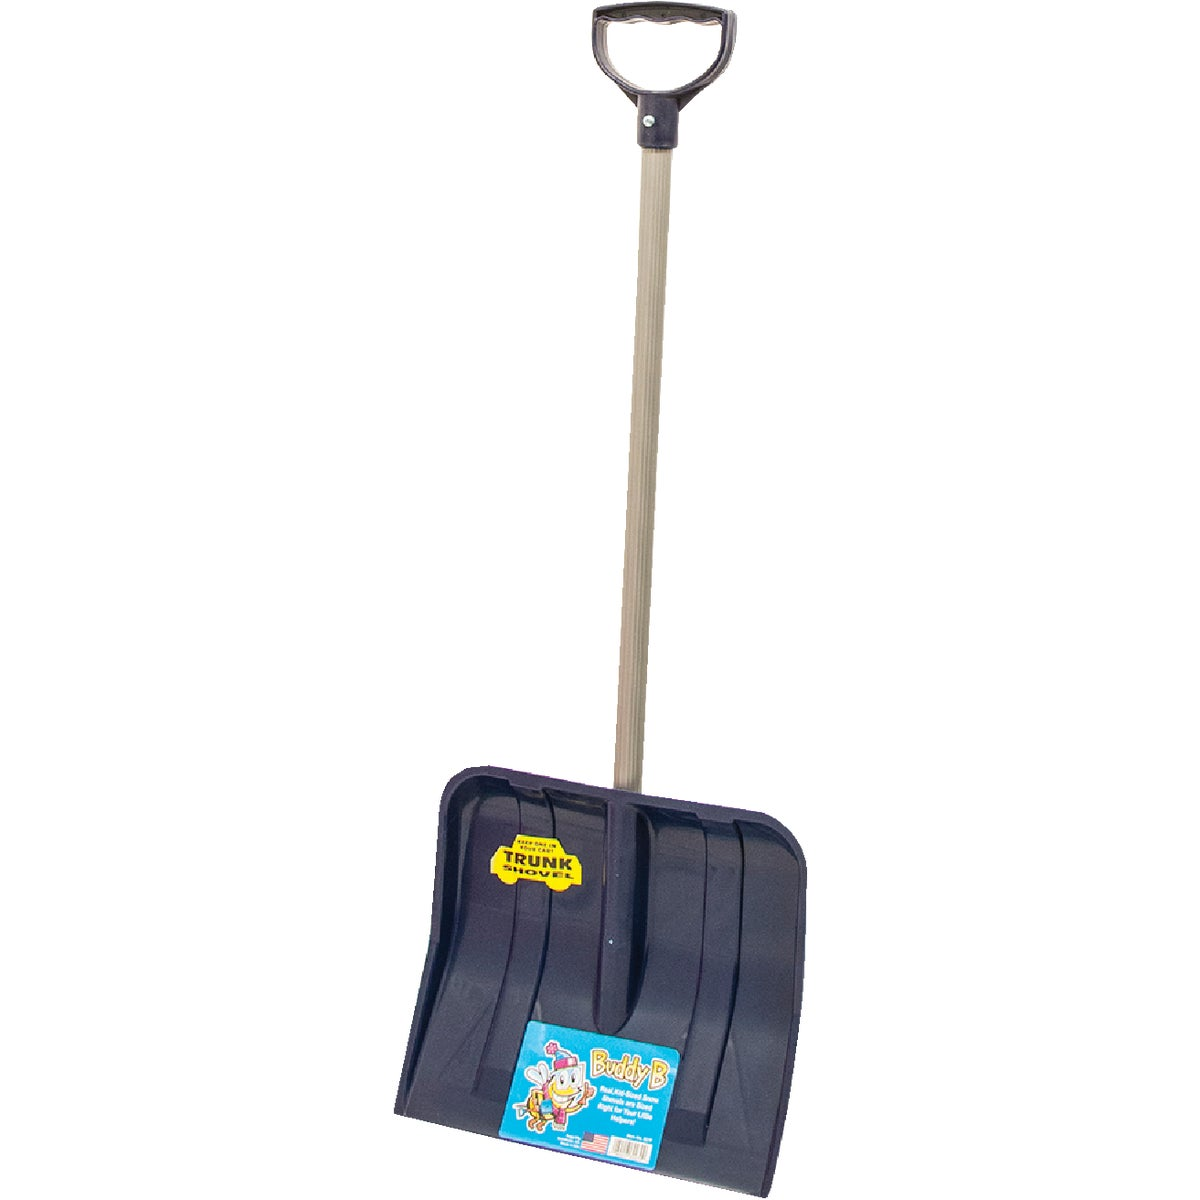 KIDS SHOVEL - SK4000 by Suncast Corporation